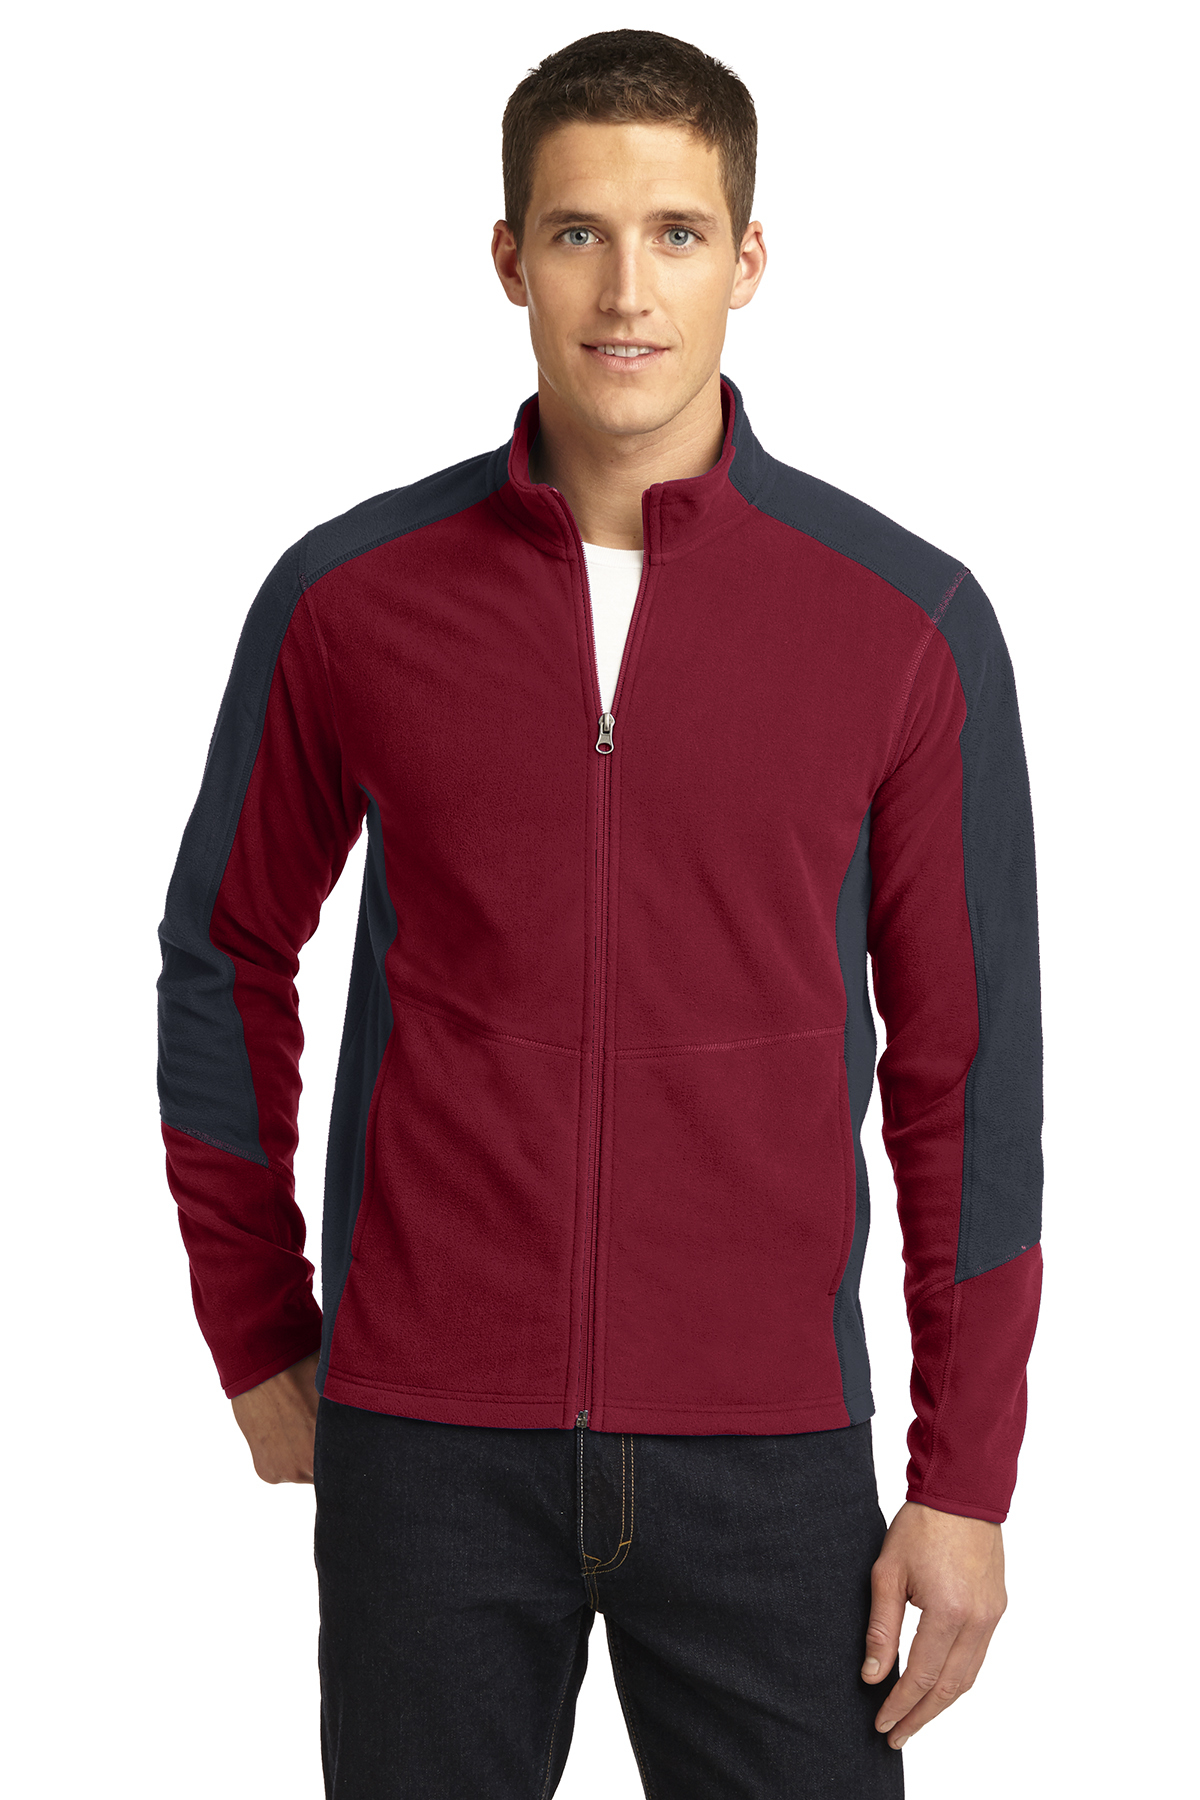 F230 Port Authority Colorblock Microfleece Jacket